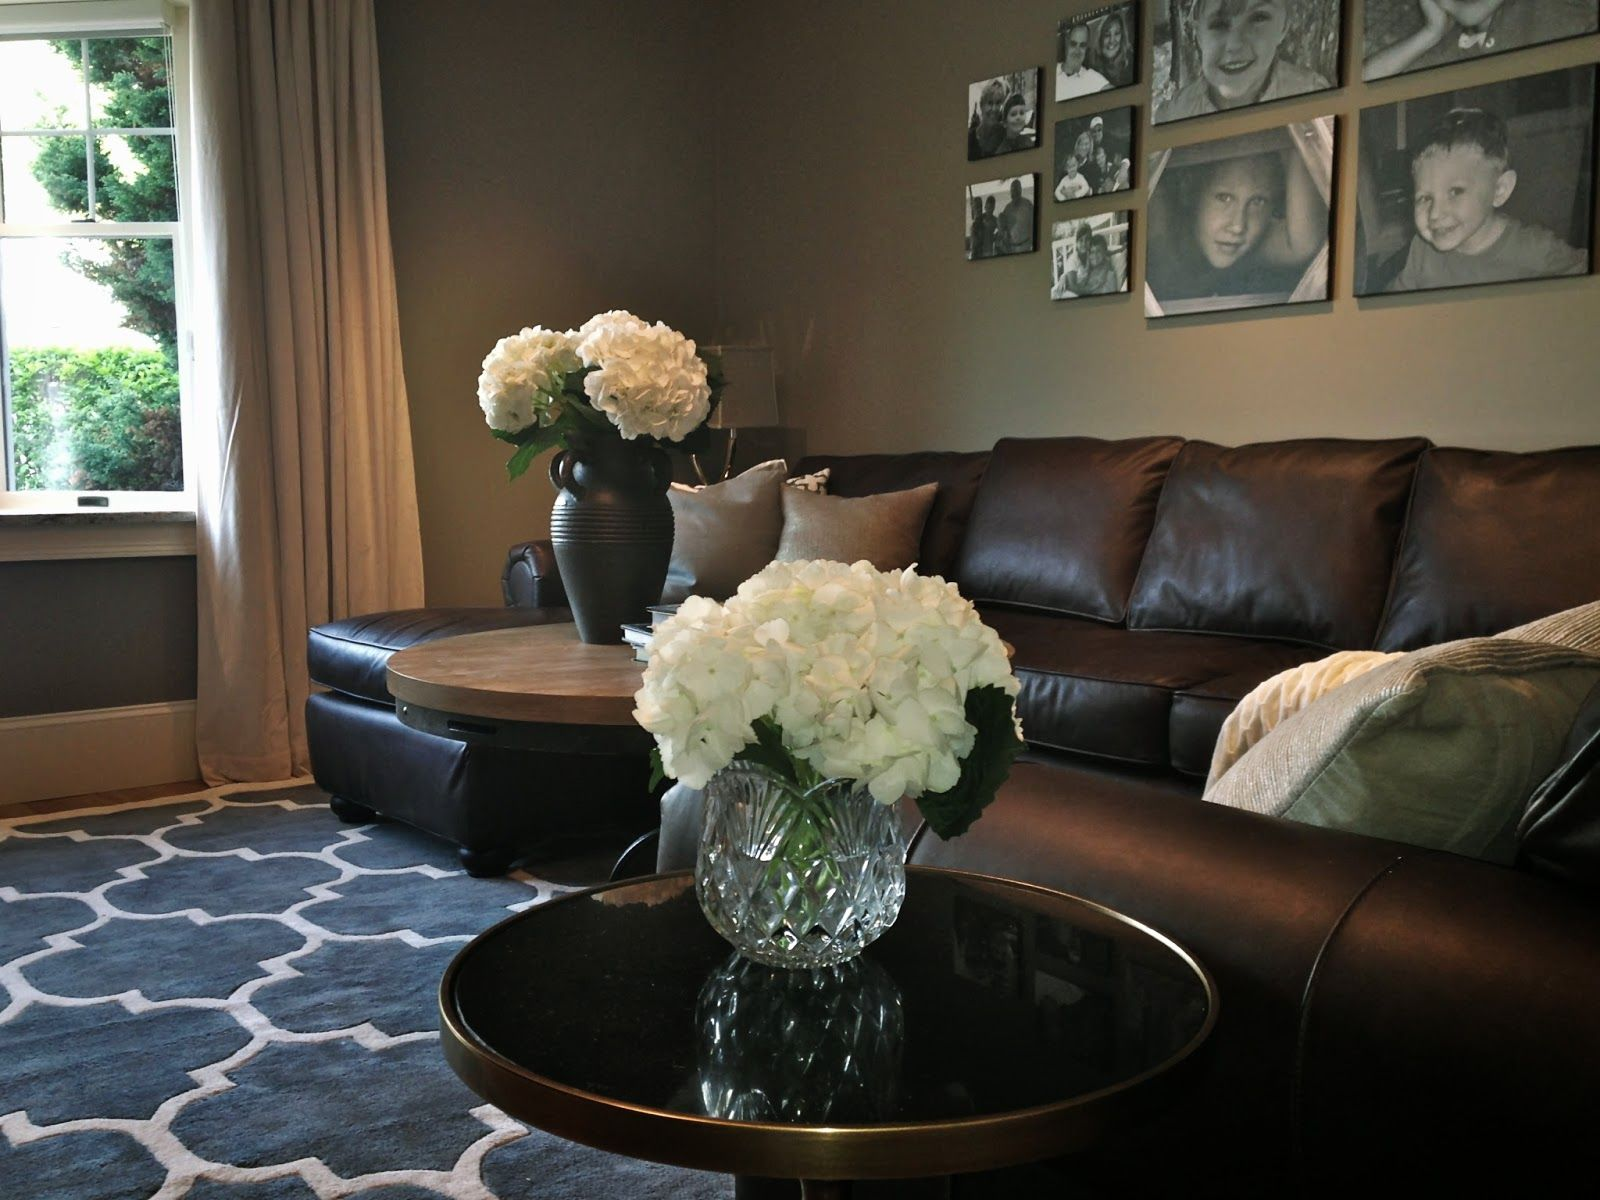 Choose the perfect area rug dark couchdecorating blogsdecorating brown